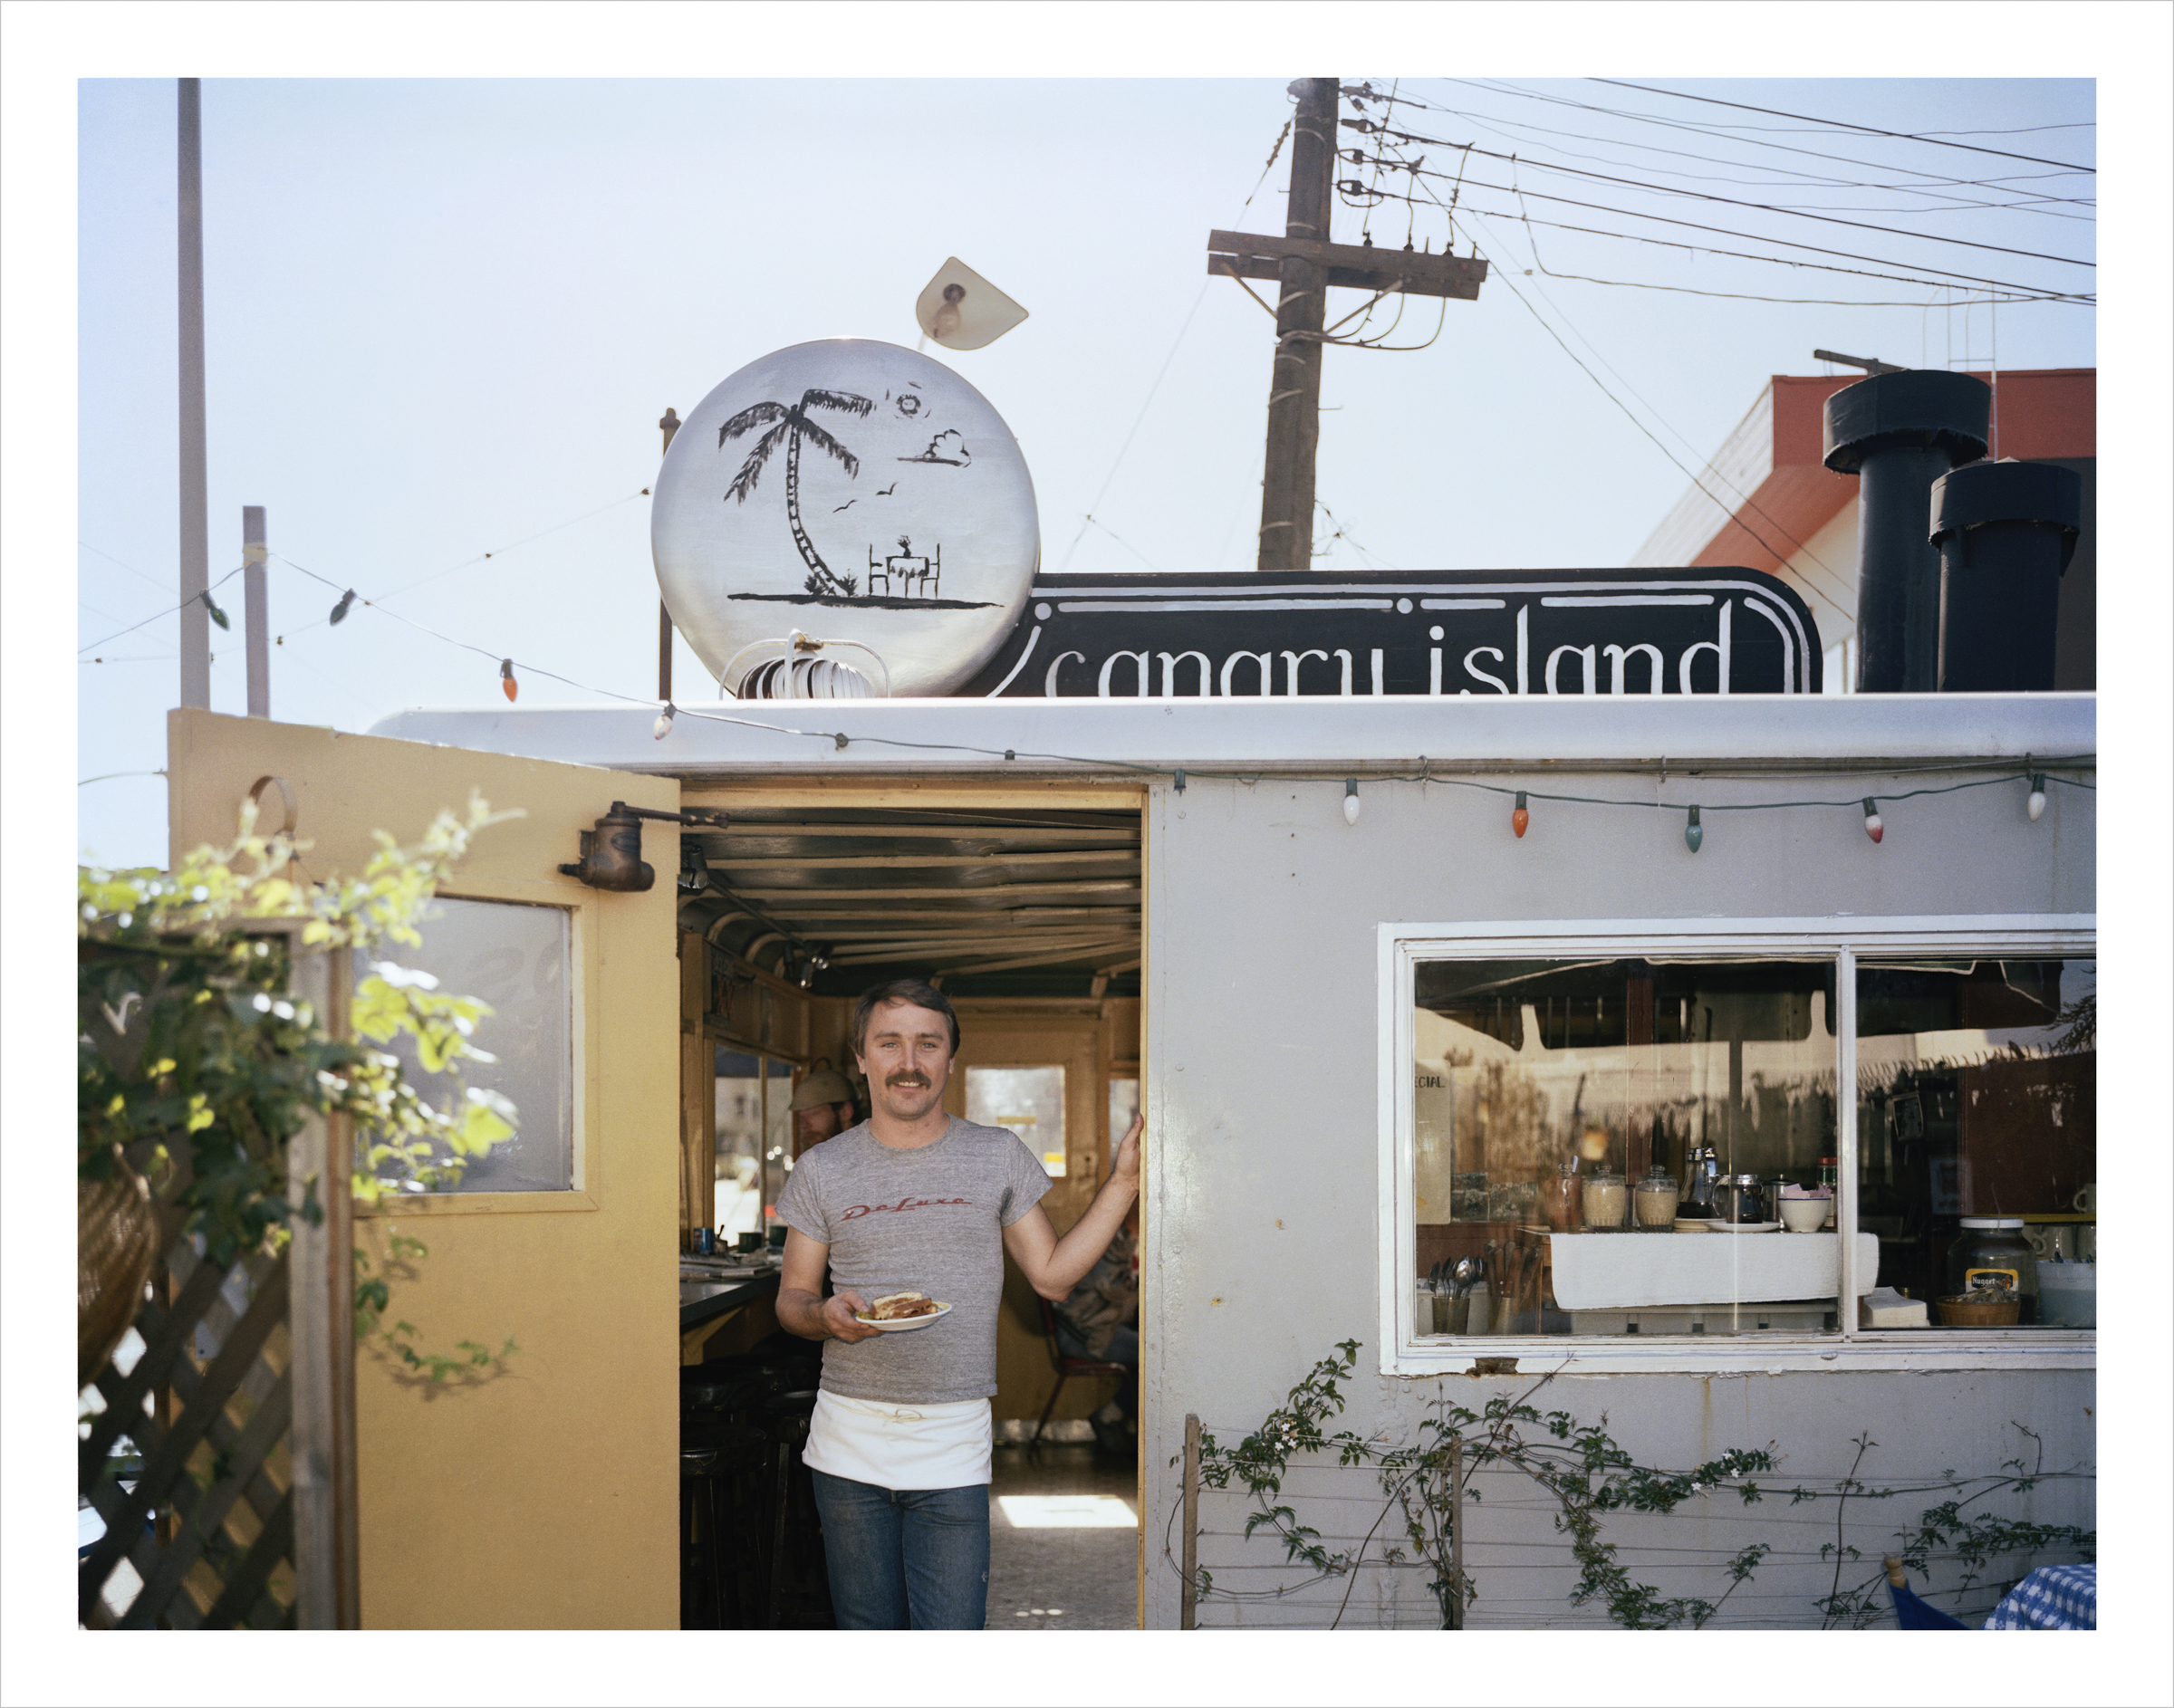 Carnary Island Diner, 1207 Harrison Street, 1982 Archival Pigment Print, 2016 16 x 20 inches, edition of 5 20 x 24 inches, edition of 2 30 x 40 inches, edition of 2